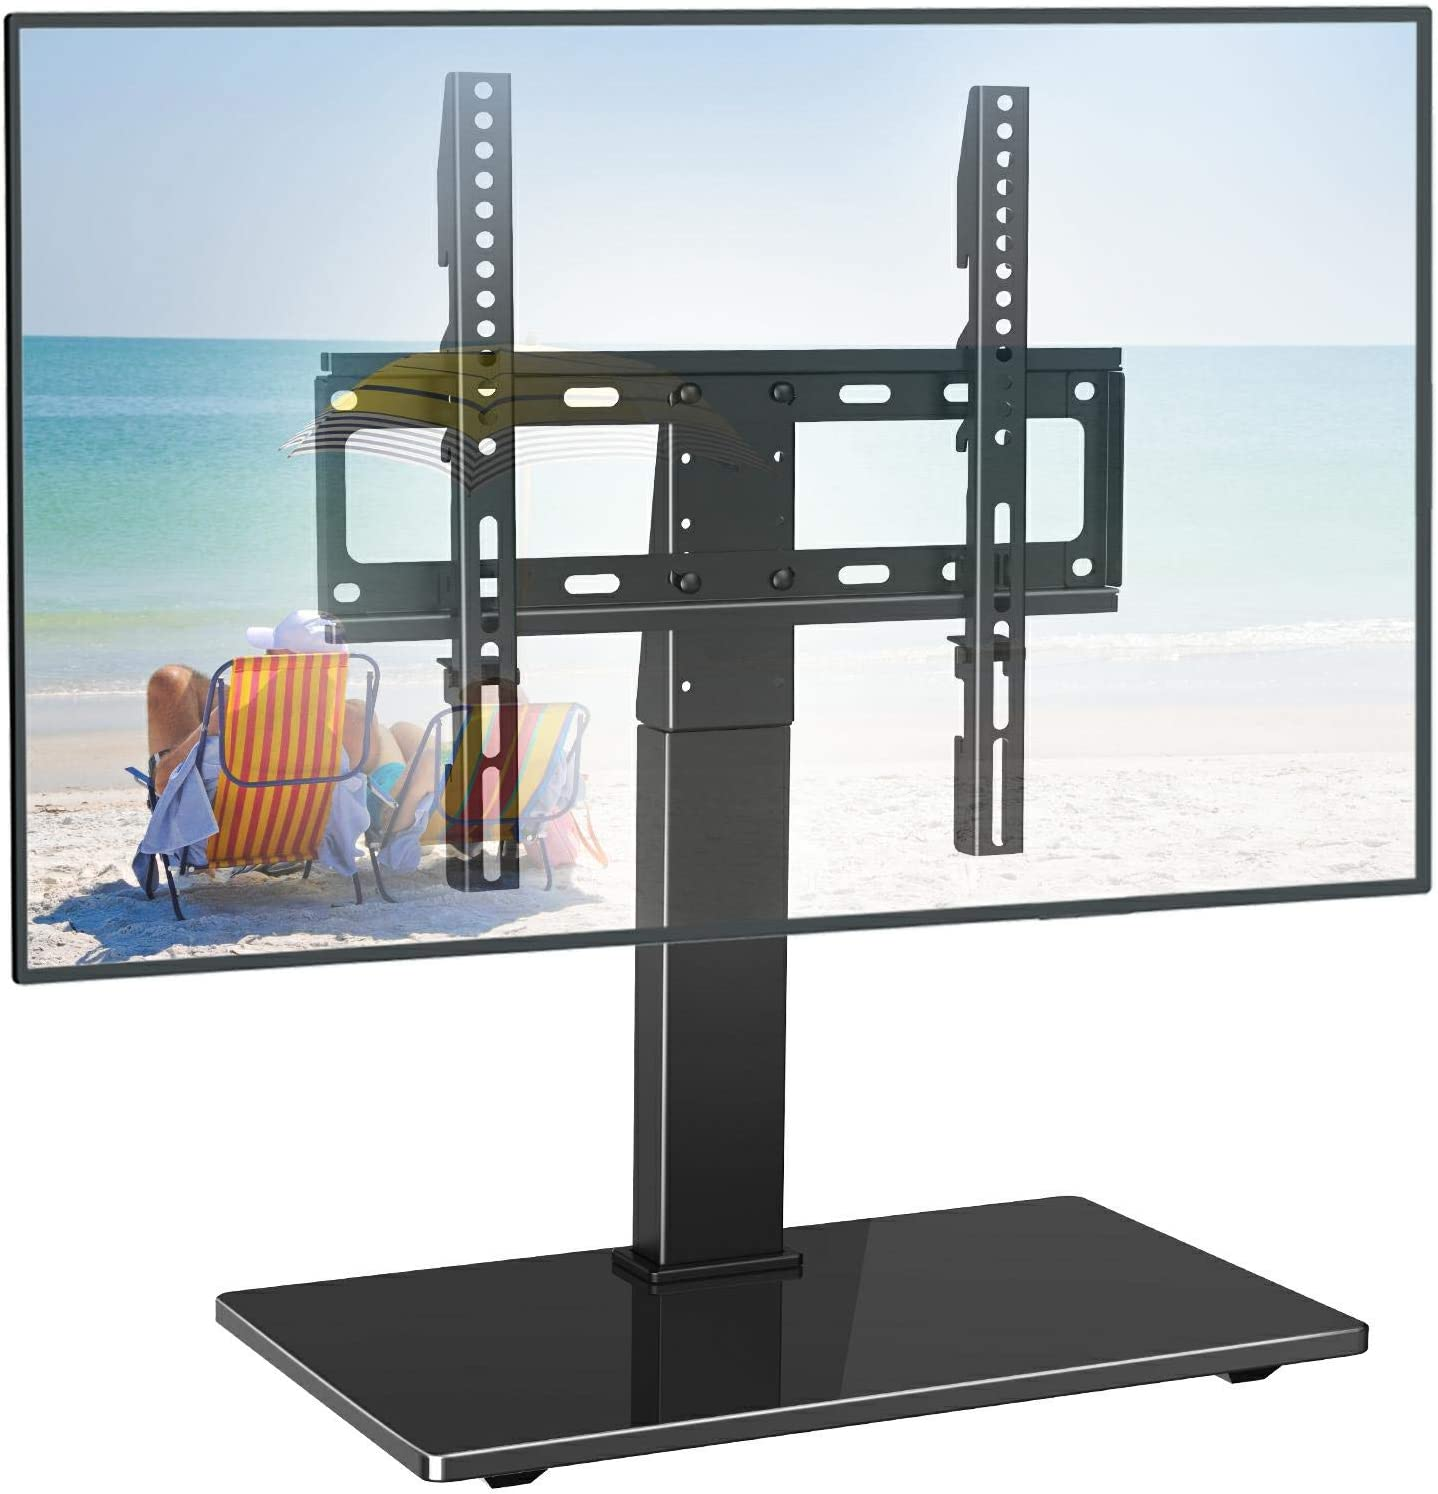 PERLESMITH Universal Swivel TV Stand - Table Top TV Stand for 26-55 Inch LCD LED TVs - Height Adjustable TV Mount Stand with Tempered Glass Base, VESA 400x400mm, Holds Up to 88lbs: Electronics